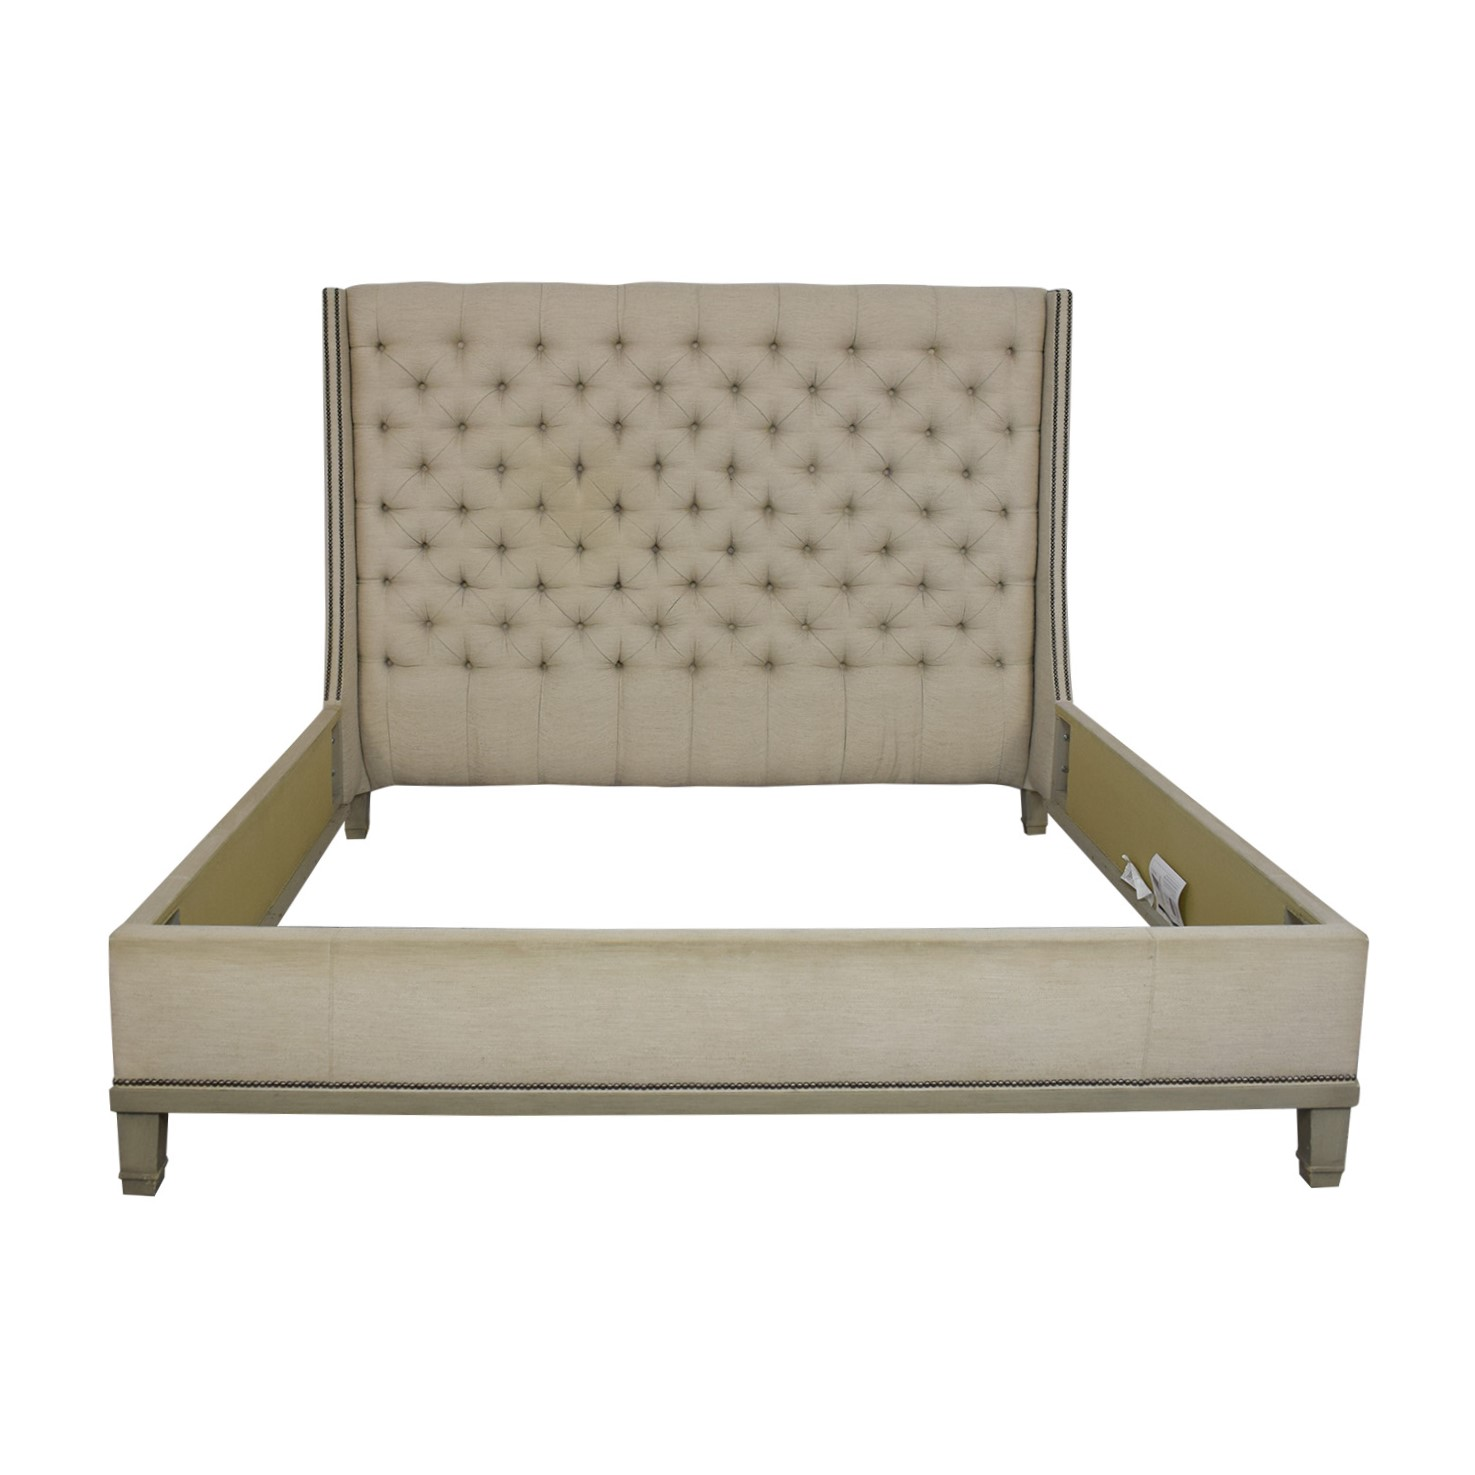 Horchow Horchow Tufted California King Bed tan